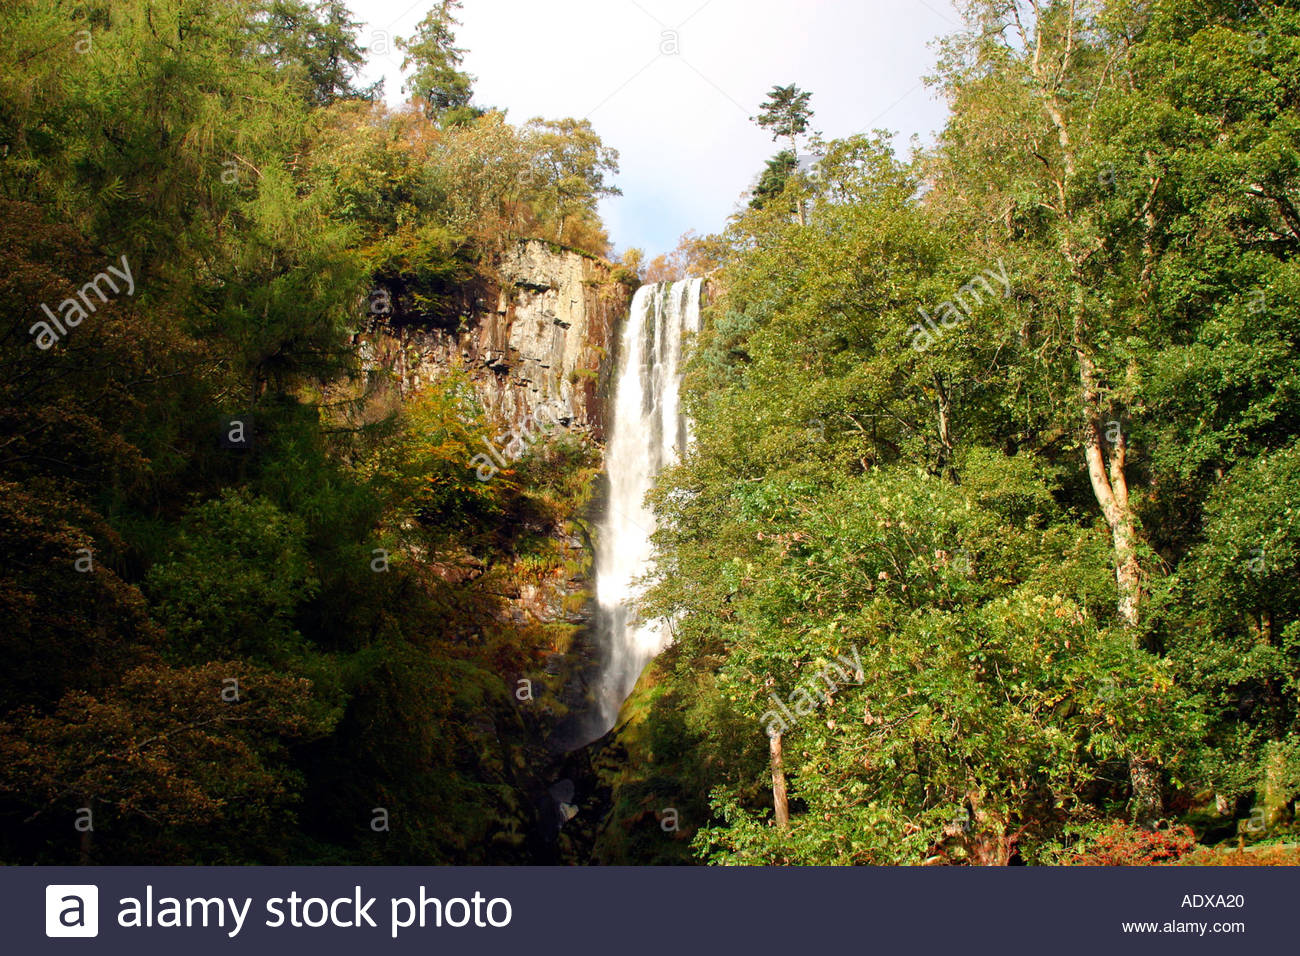 Pistyll Rhaeadr North Wales, Pistyll Rhaeadr waterfall in Denbighshire Berwyn Mountains North ...